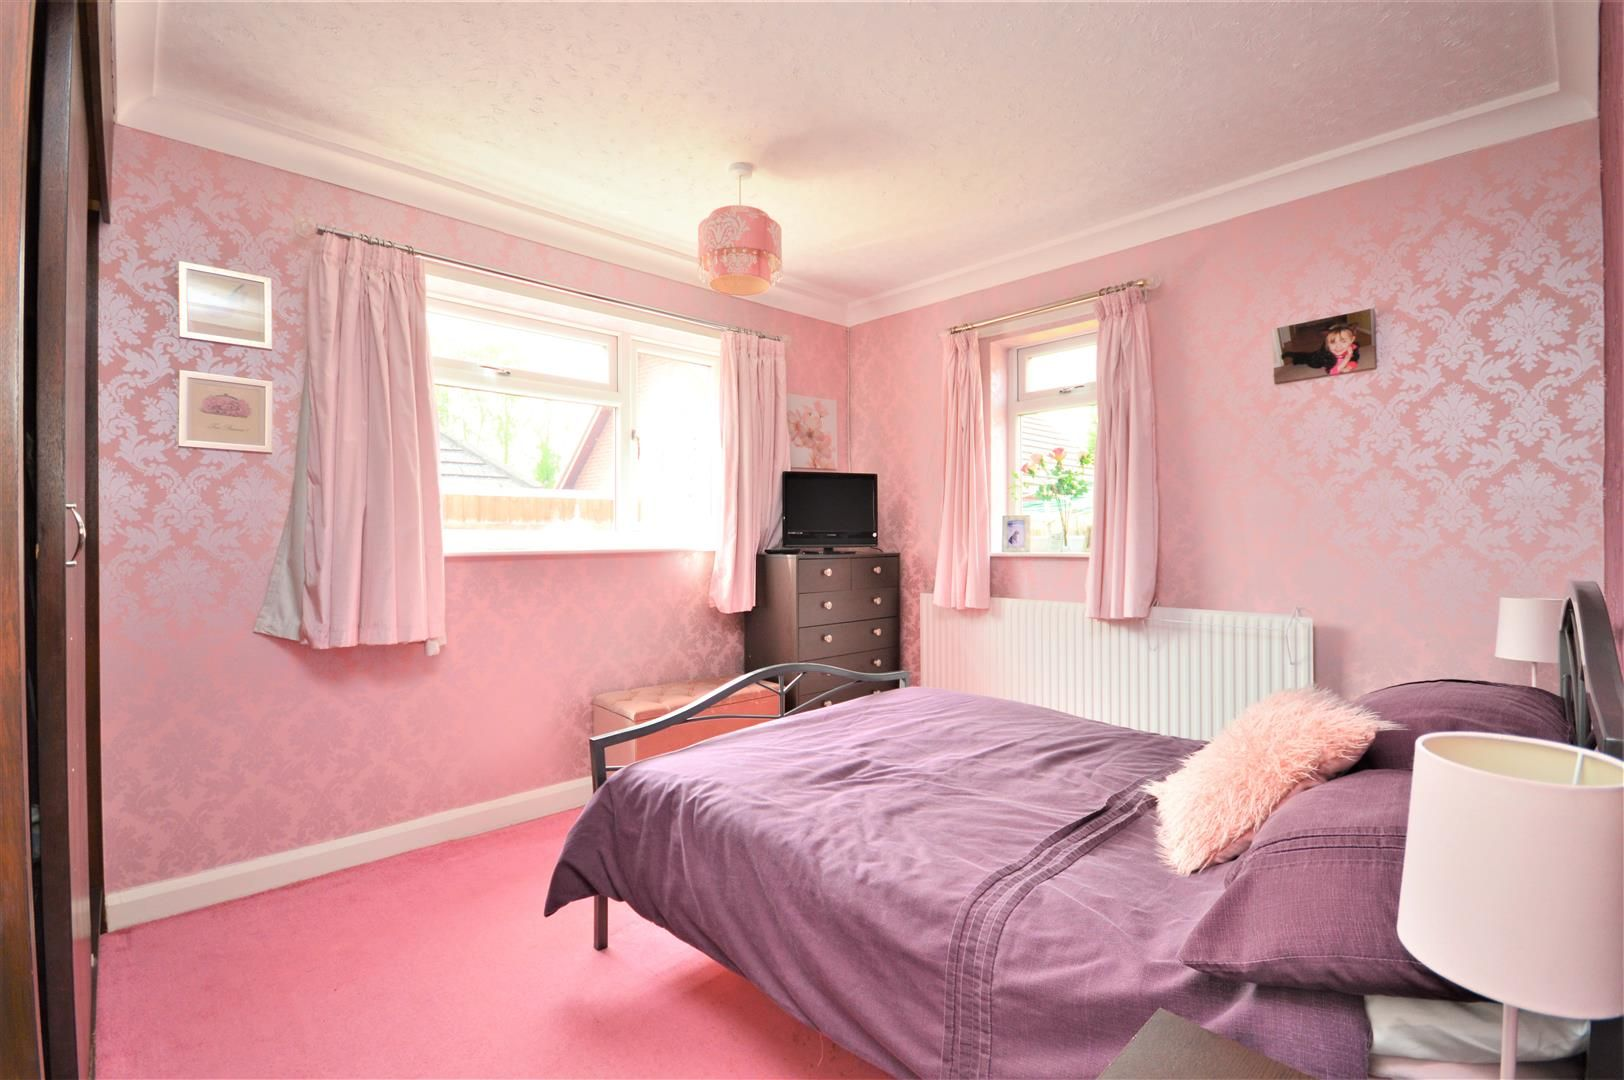 4 bed detached-bungalow for sale in Marden 9